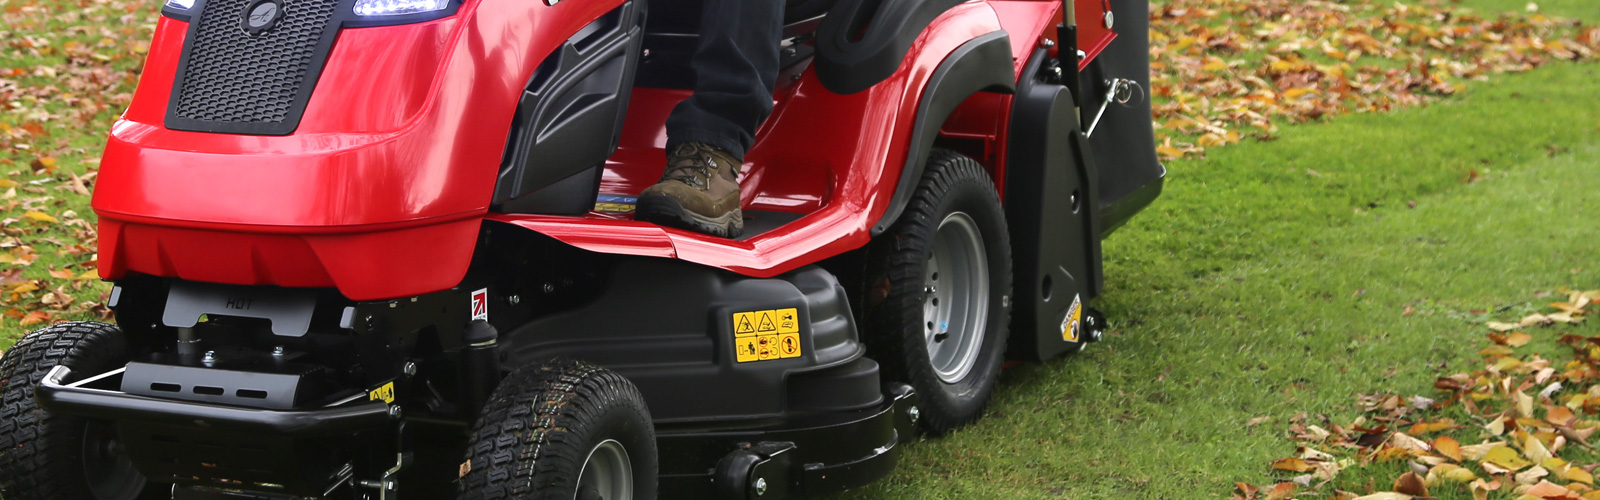 Countax garden tractor using power take-off to collect leaves